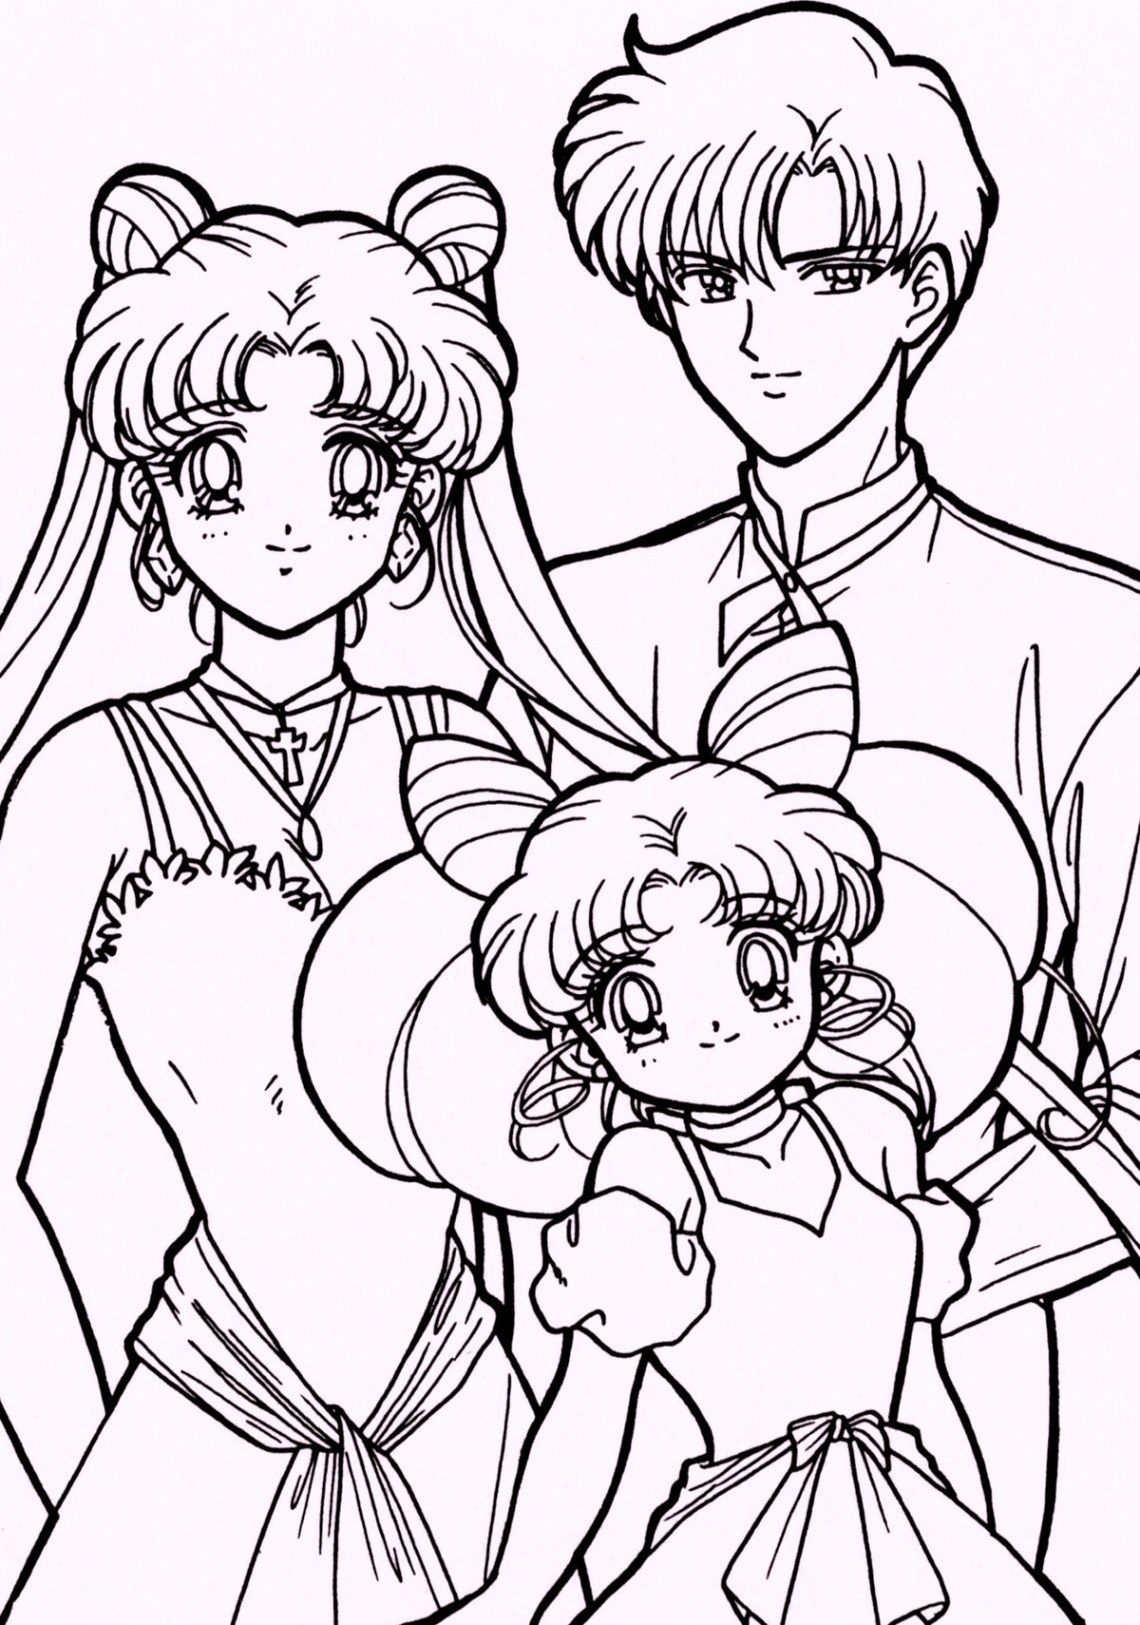 Sailor Moon Coloring 04 With Images Sailor Moon Coloring Pages